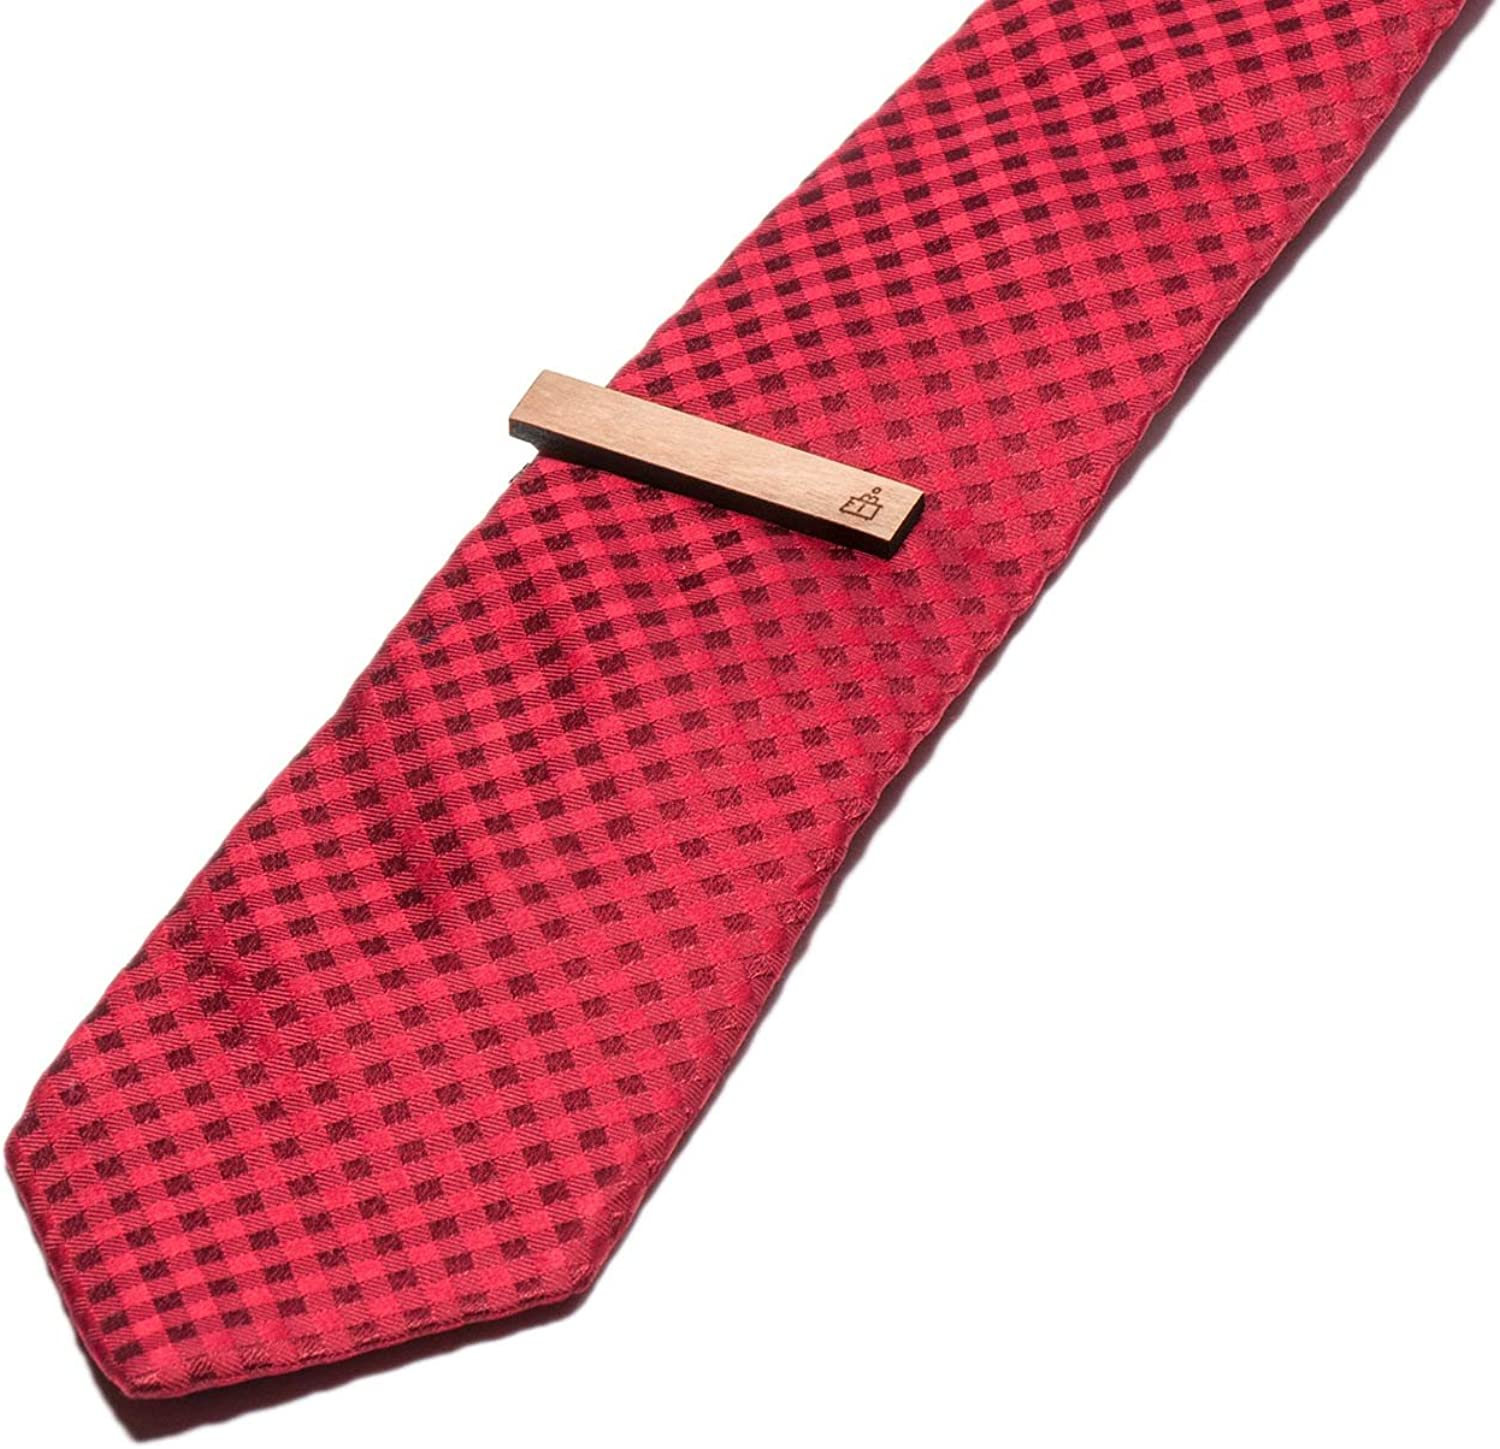 Wooden Accessories Company Wooden Tie Clips with Laser Engraved Information Desk Design Cherry Wood Tie Bar Engraved in The USA